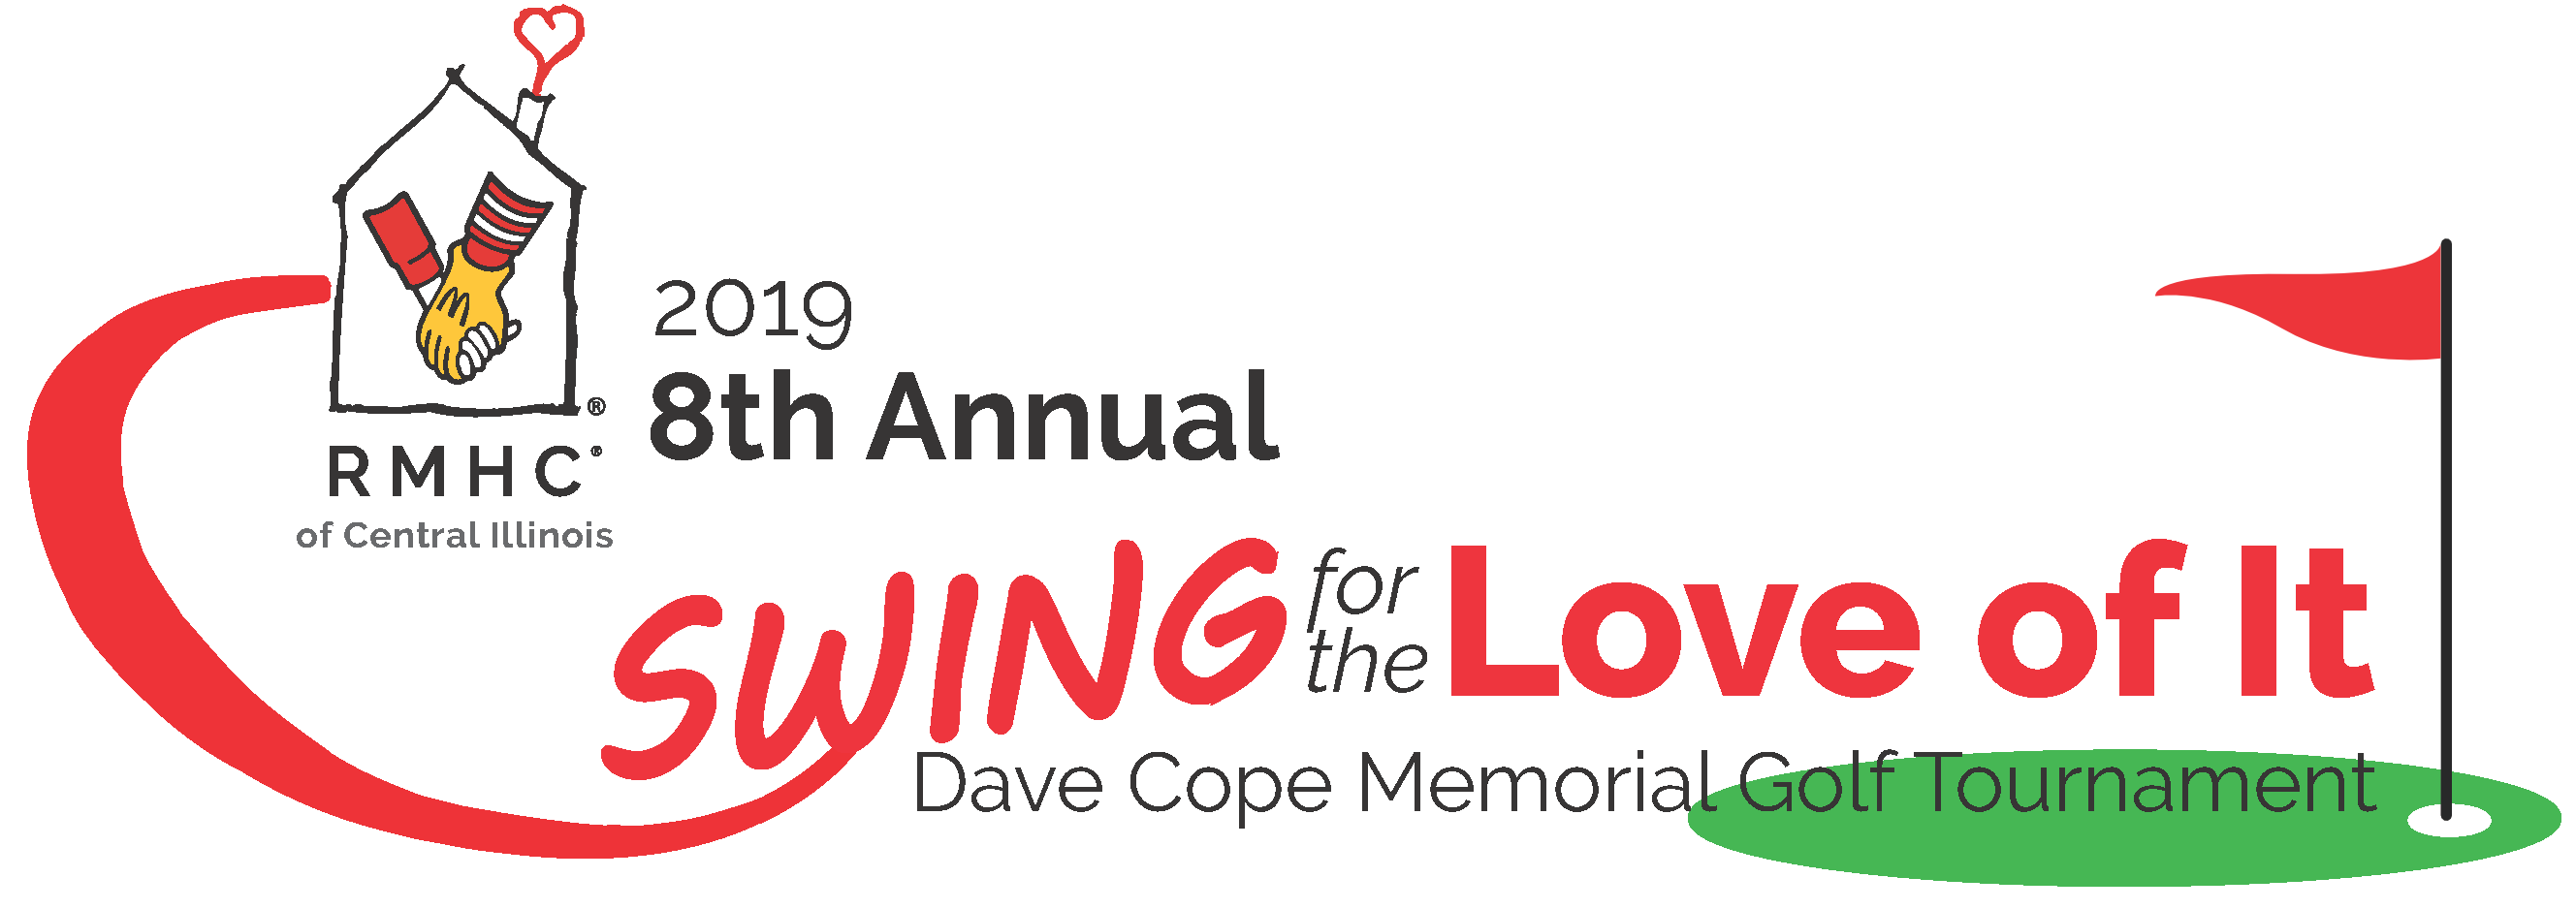 "Join us for the 8th Annual Dave Cope ""Swing for the Love of It"" Memorial Golf Tournament on Tuesday September 10, 2019!"